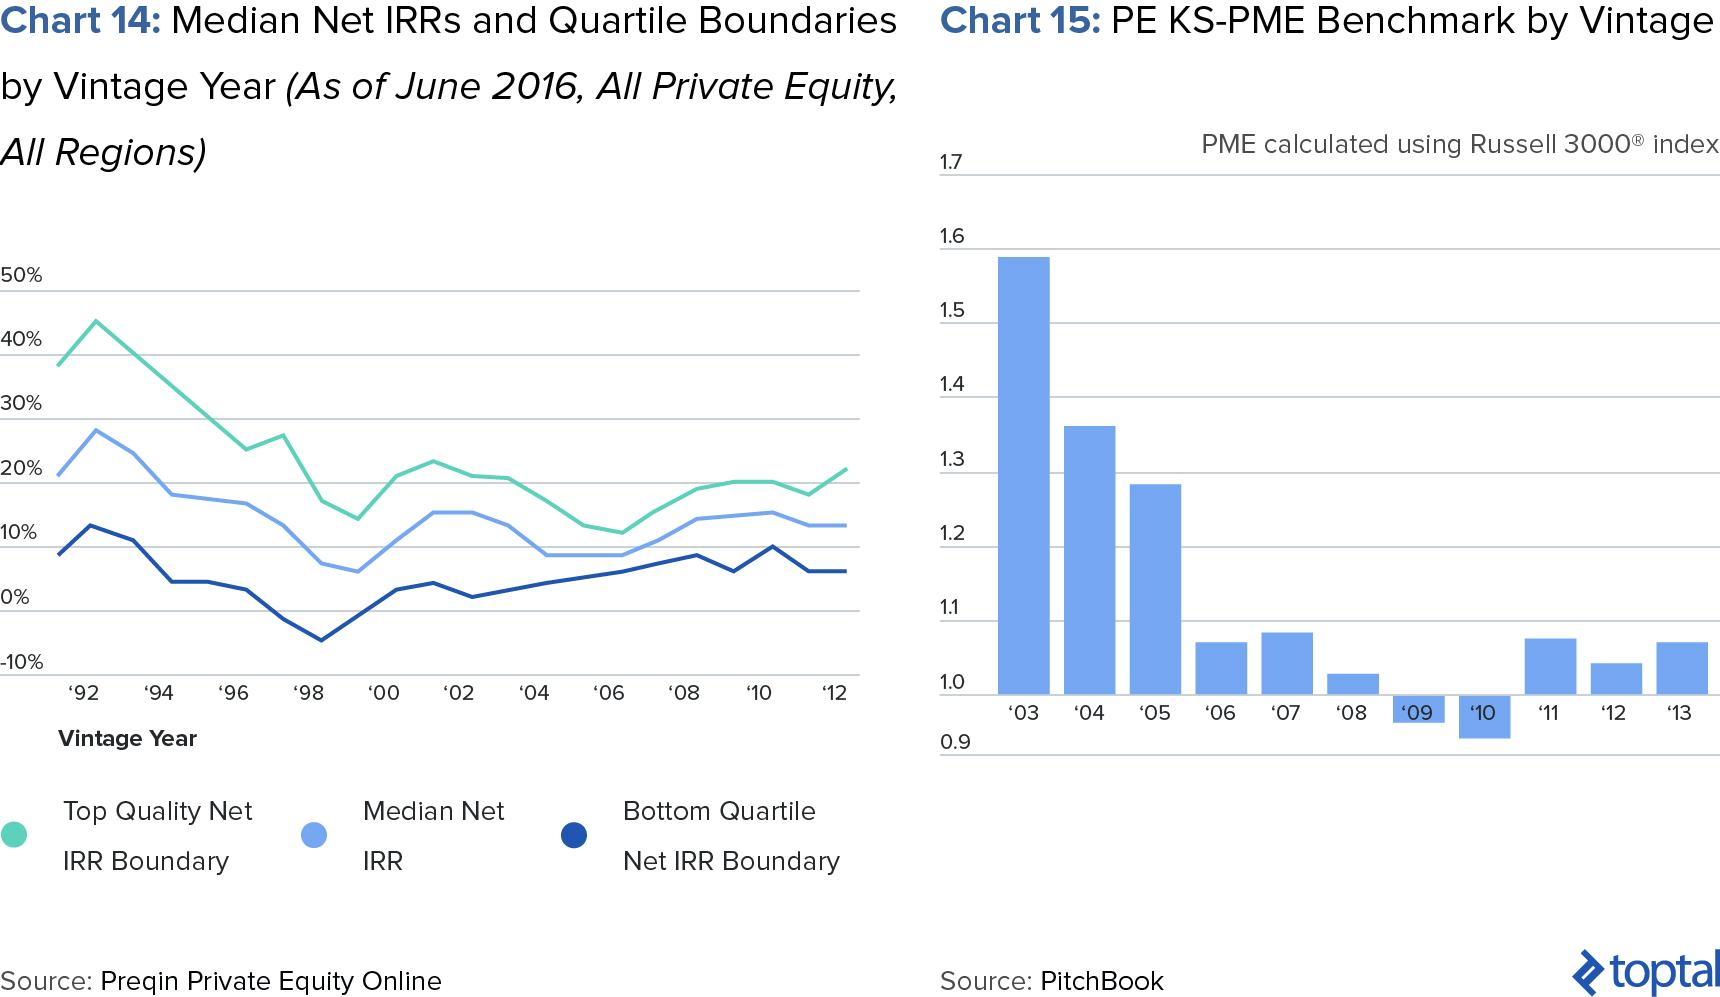 Chart 14: Median Net IRRs and Quartile Boundaries by Vintage Year (as of June 2016, All private equity, All Regions); and Chart 15: PE KS-PME Benchmark by Vintage